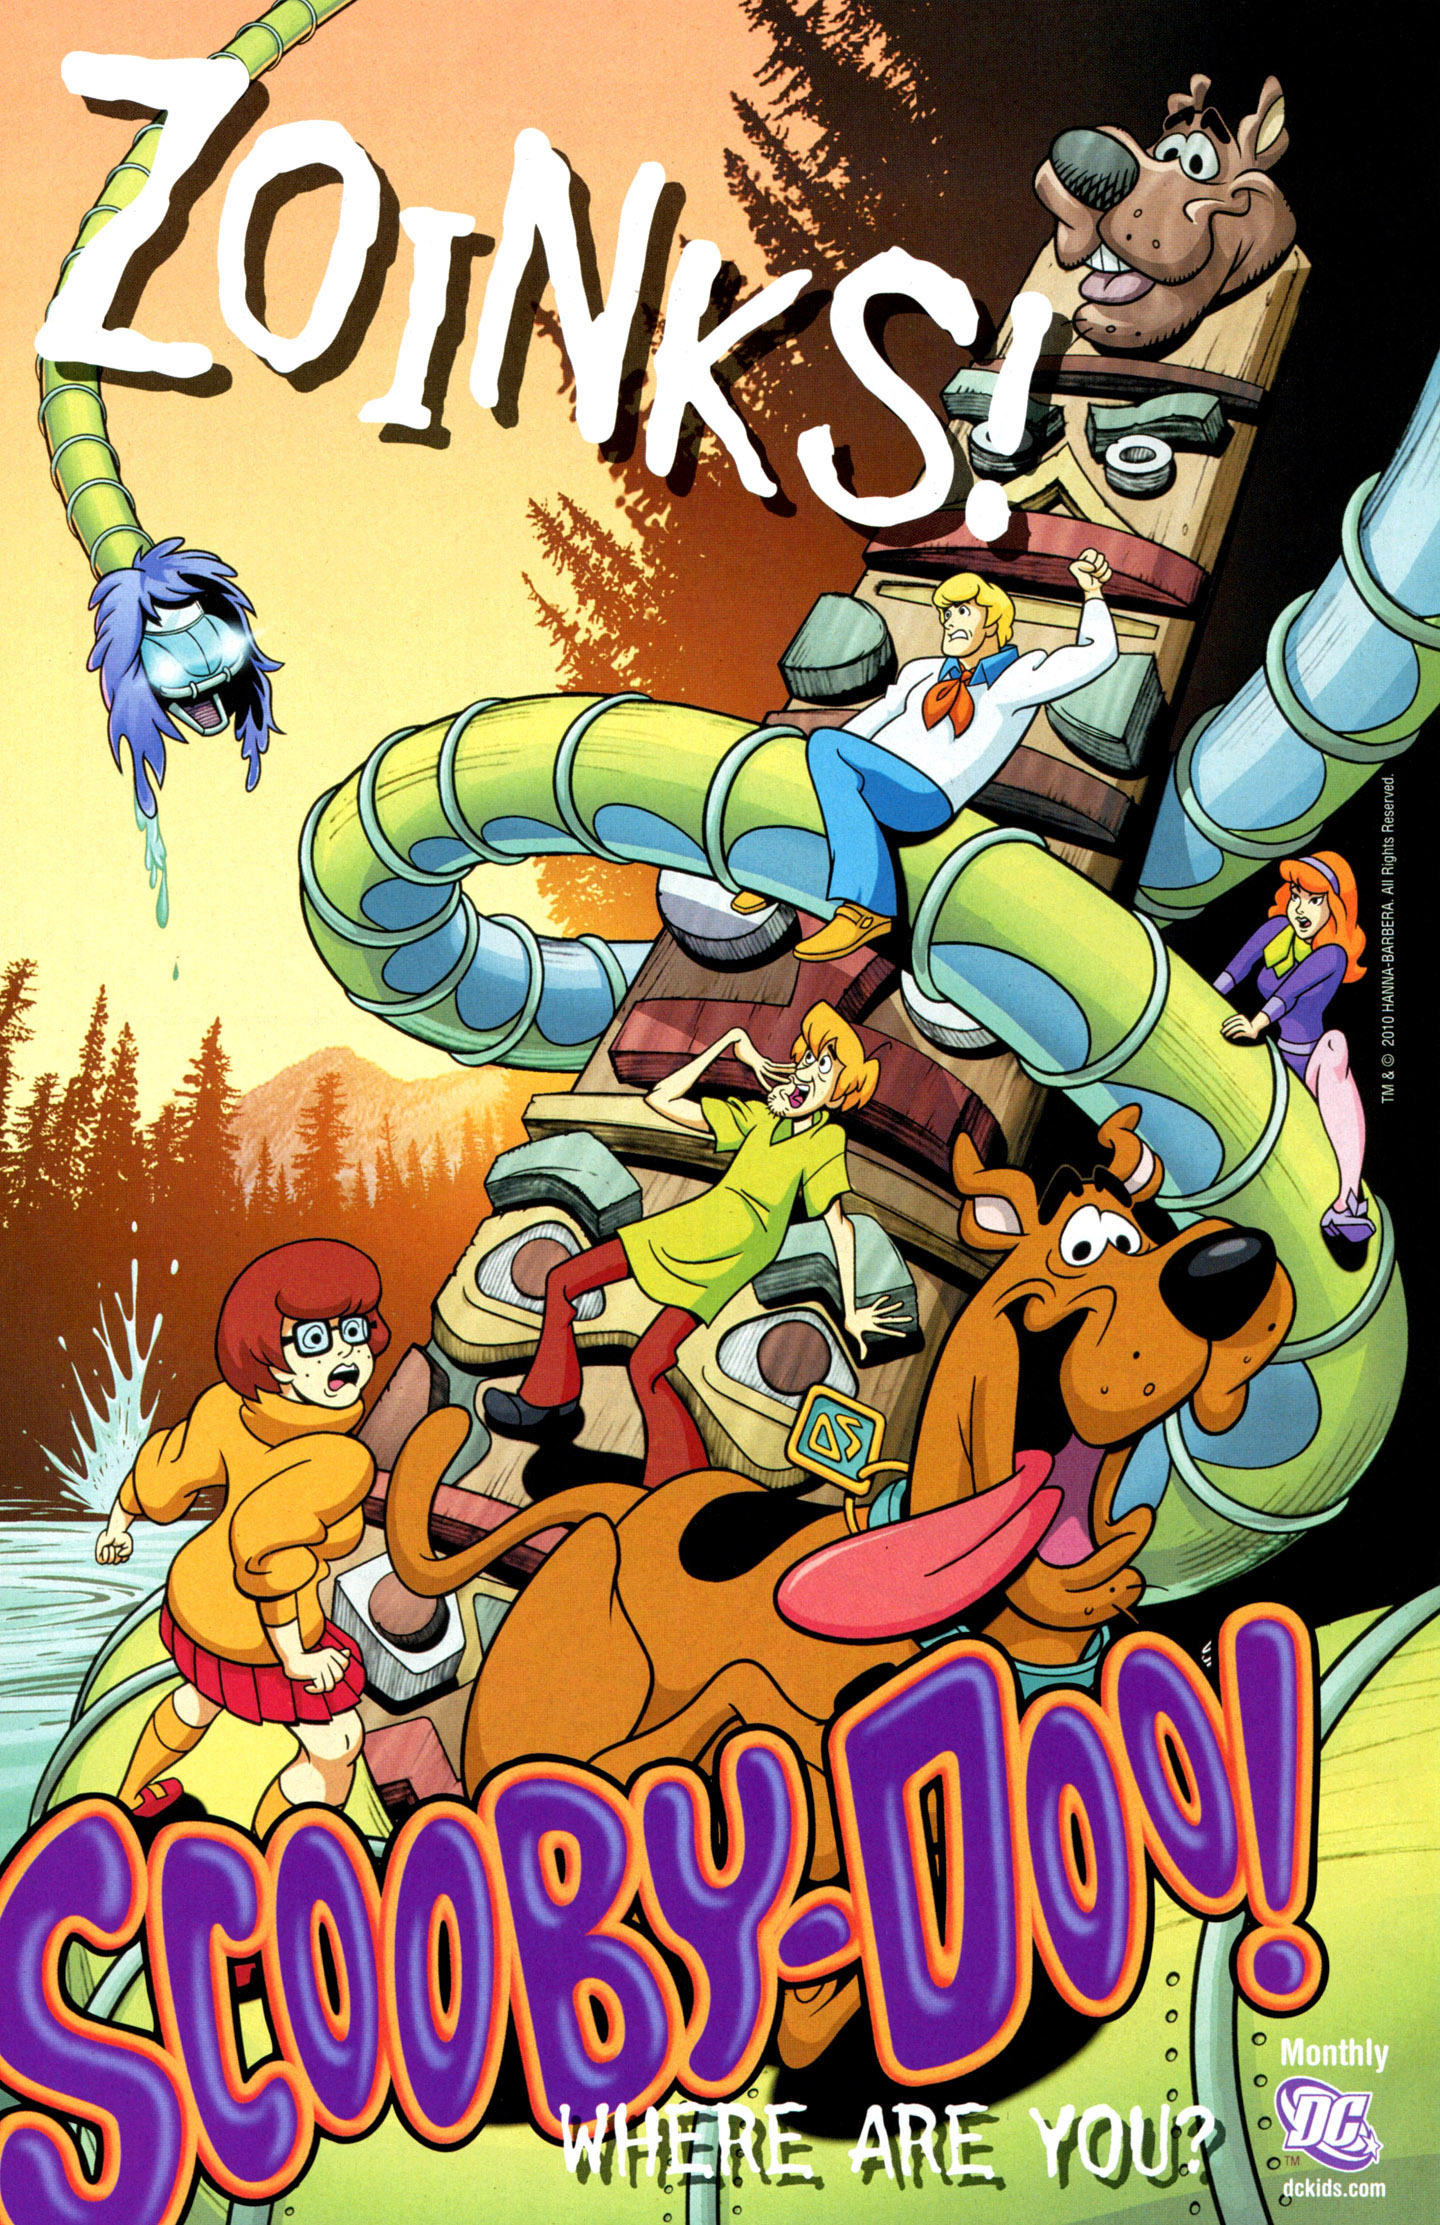 Read online Scooby-Doo: Where Are You? comic -  Issue #20 - 20